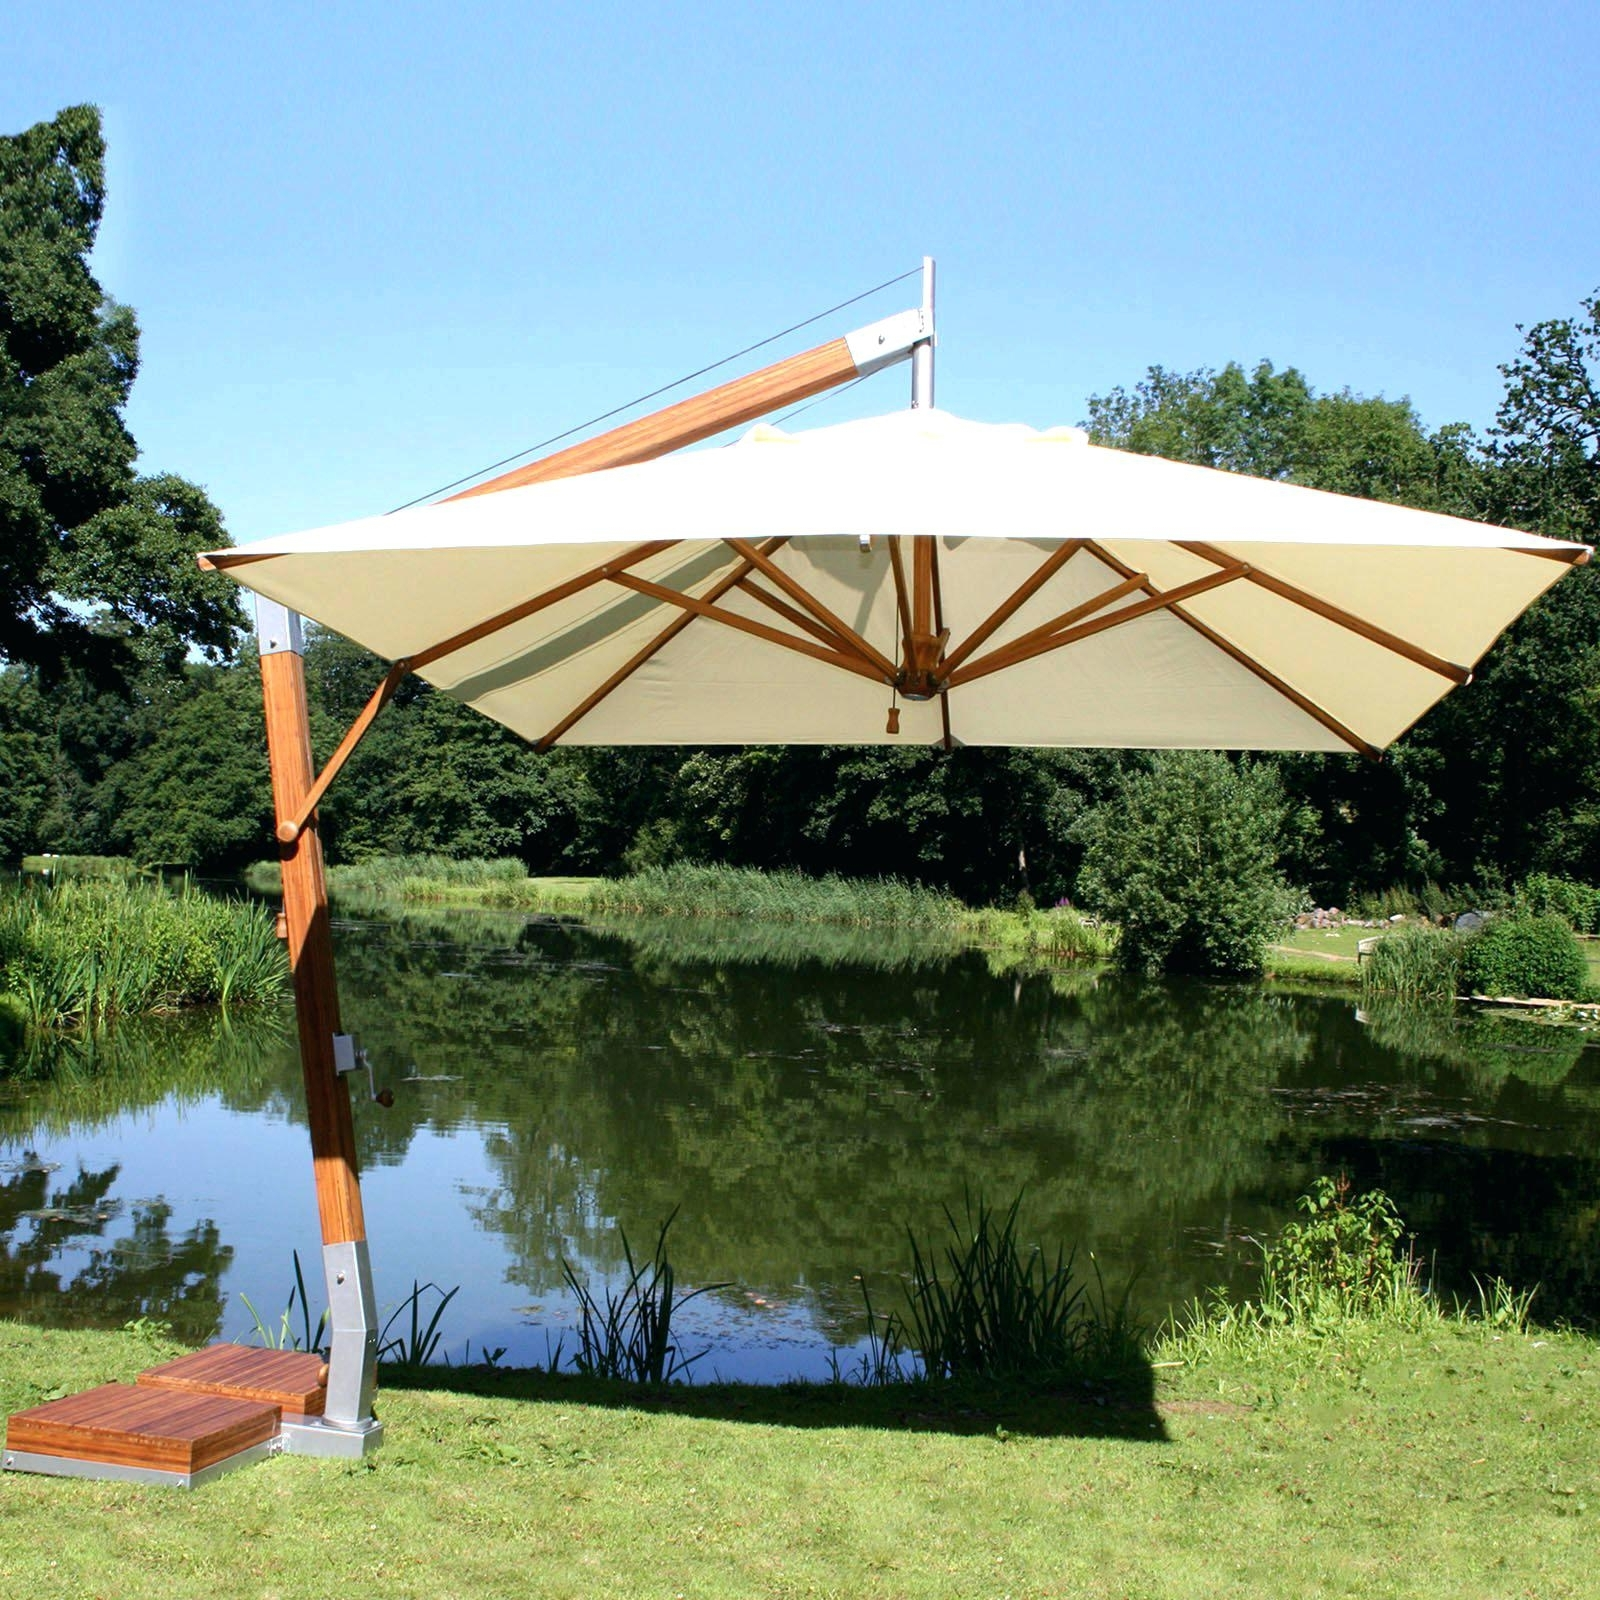 Lowes Cantilever Patio Umbrellas With Preferred Umbrella Base Cover Southern Patio Lowes Cantilever – Dlabiura (View 13 of 20)